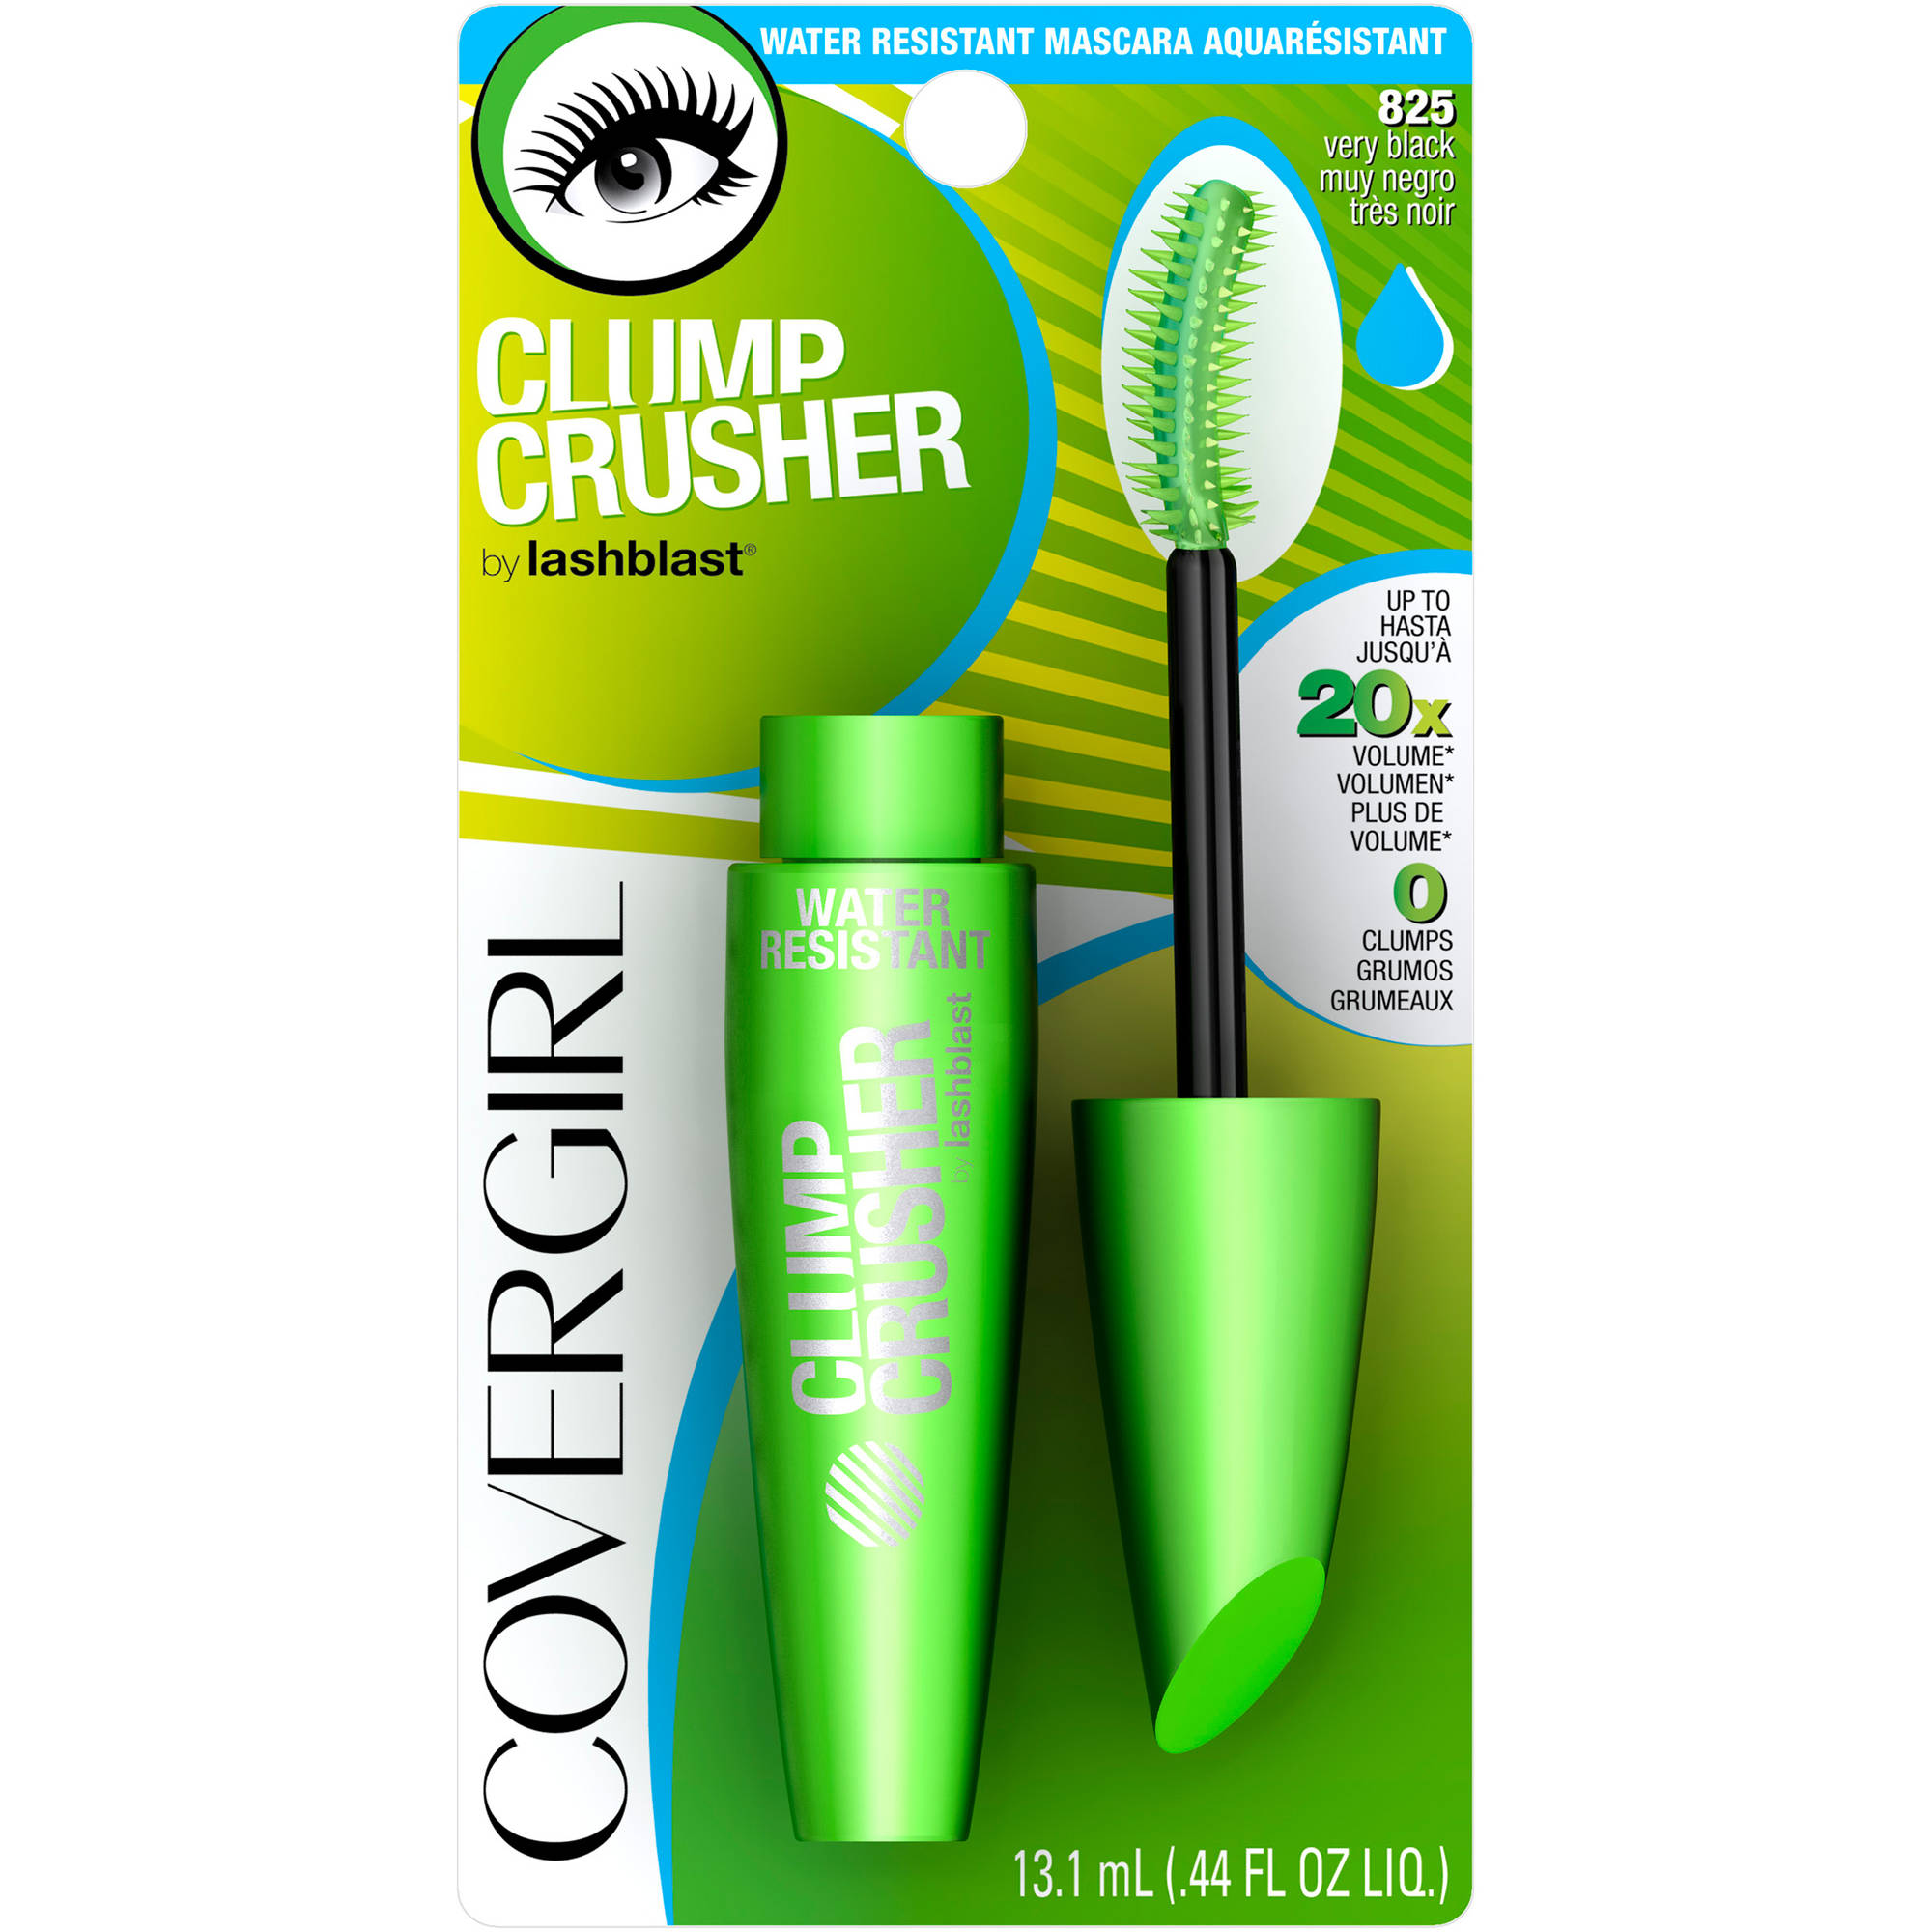 COVERGIRL Clump Crusher by LashBlast Water Resistant Mascara, 825 Very Black, .44 fl oz